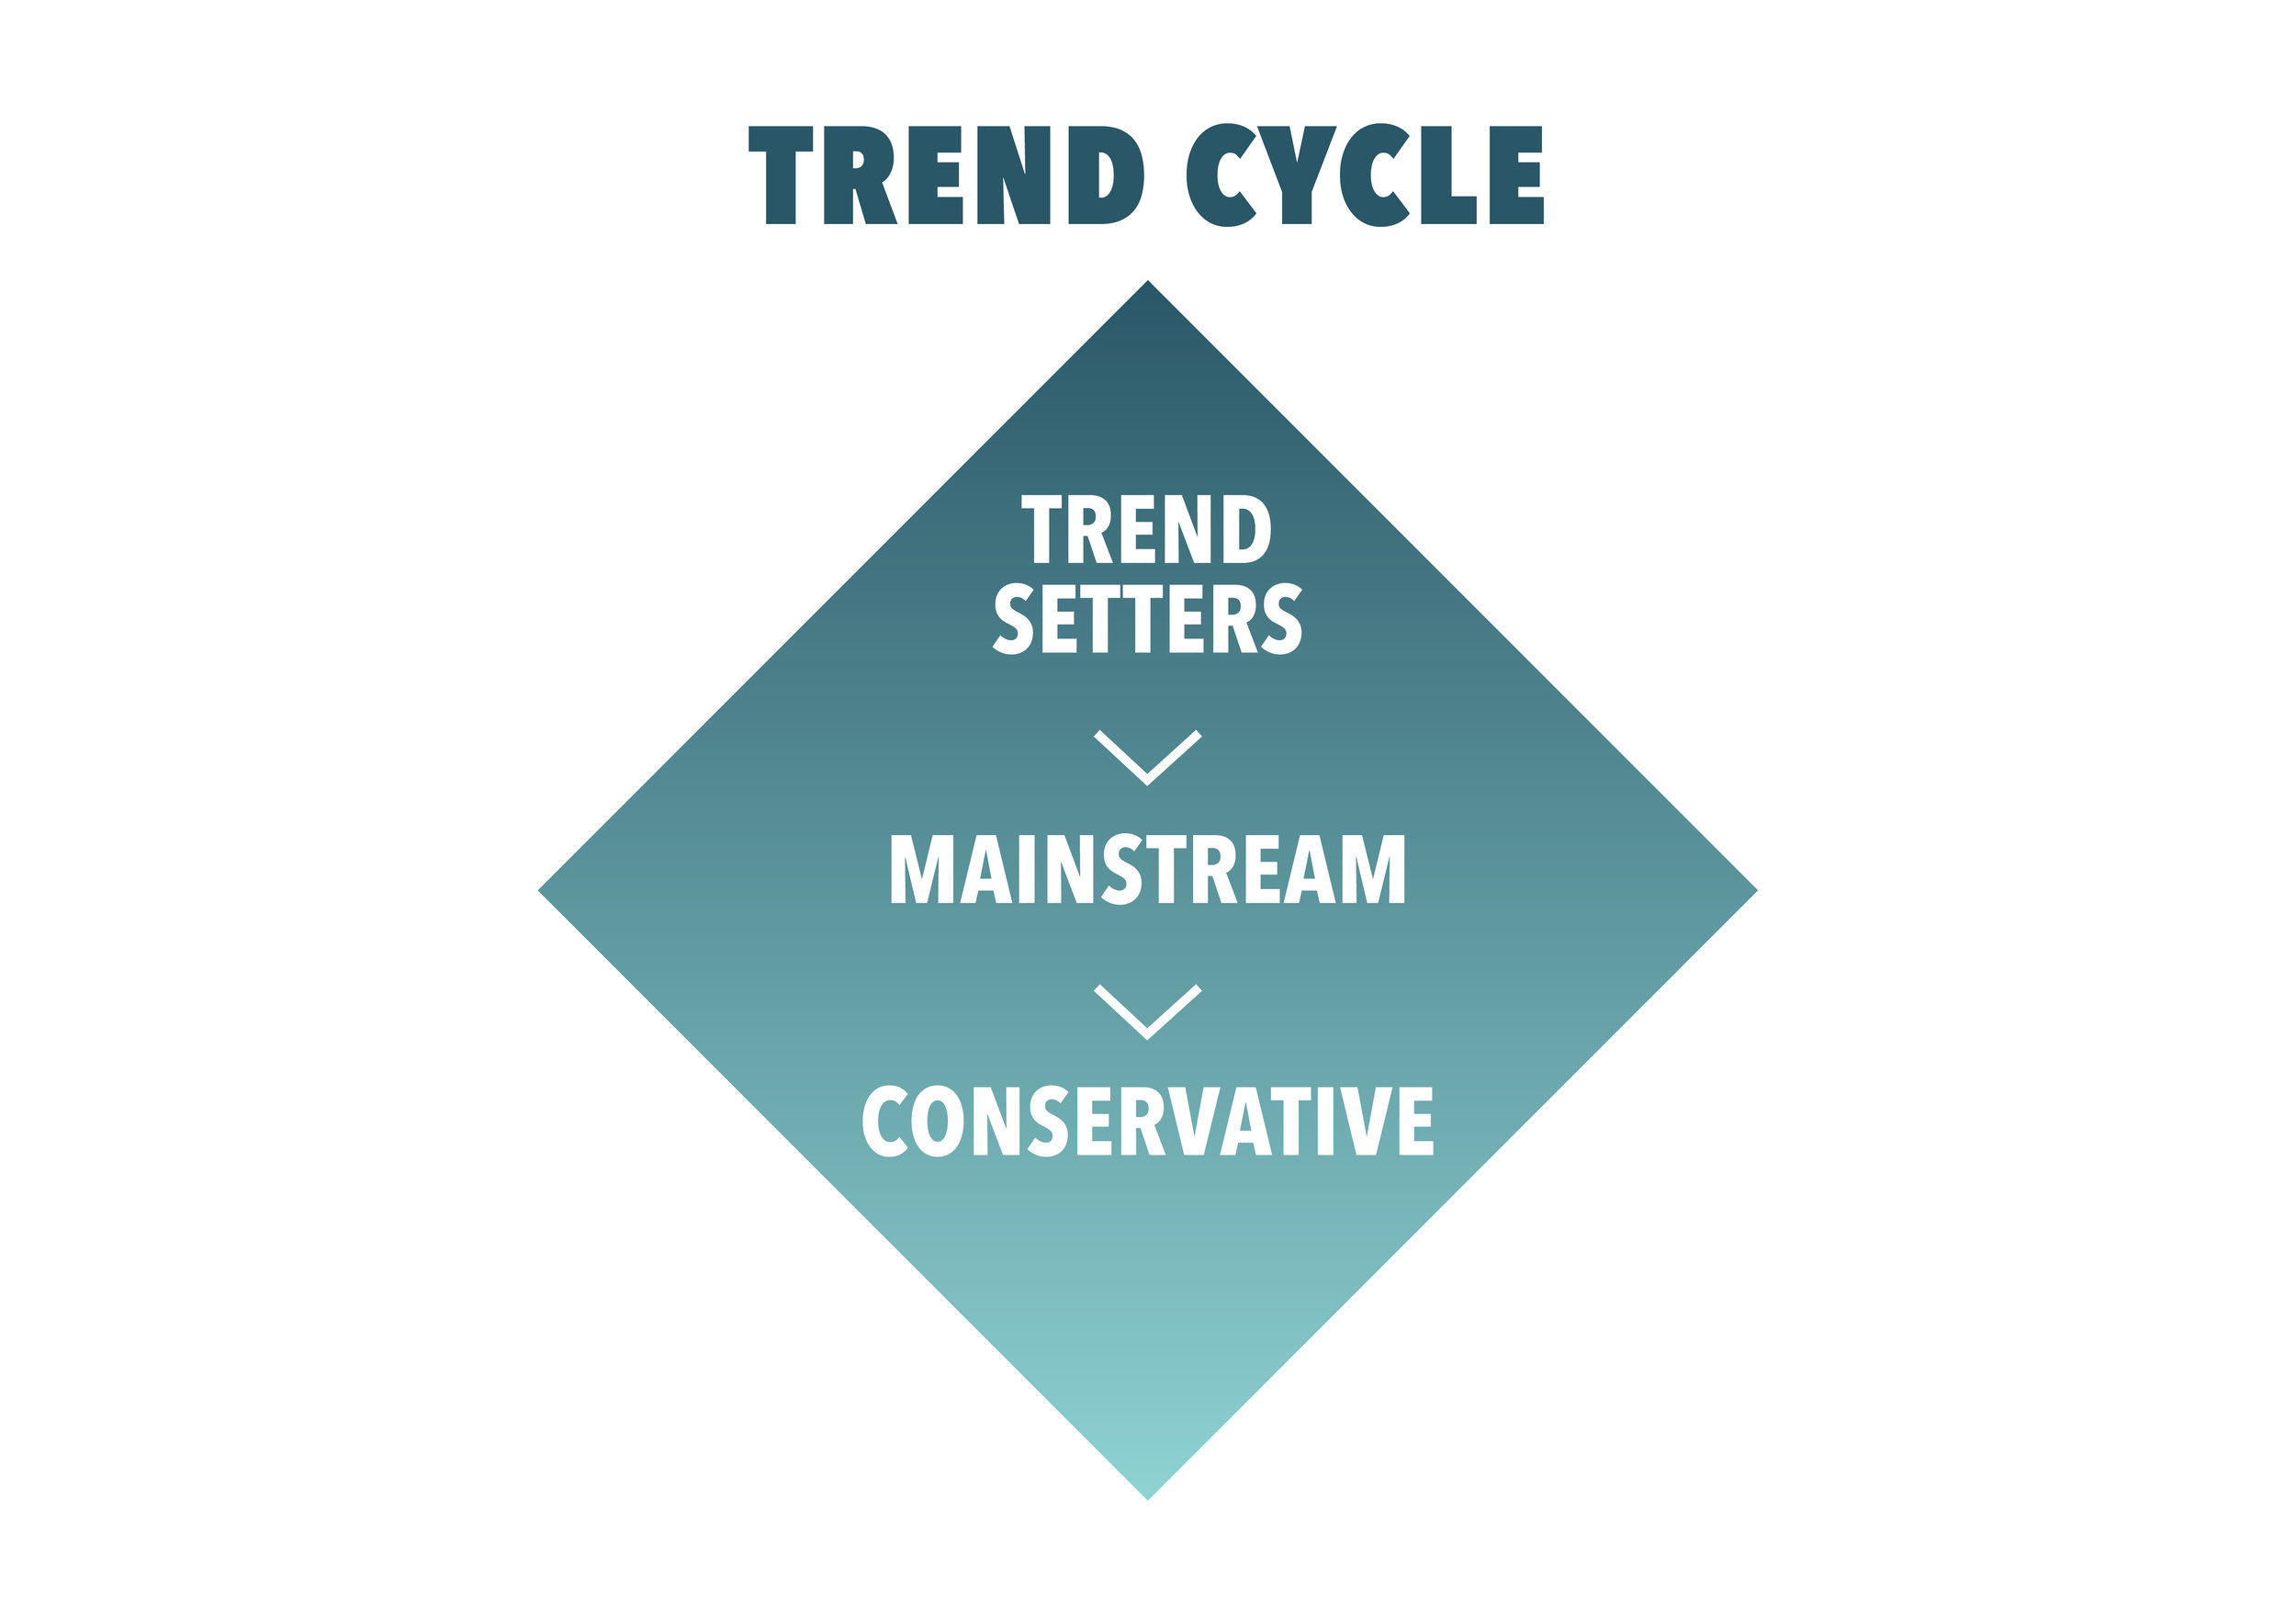 Trend Cycle (Image: ITI)